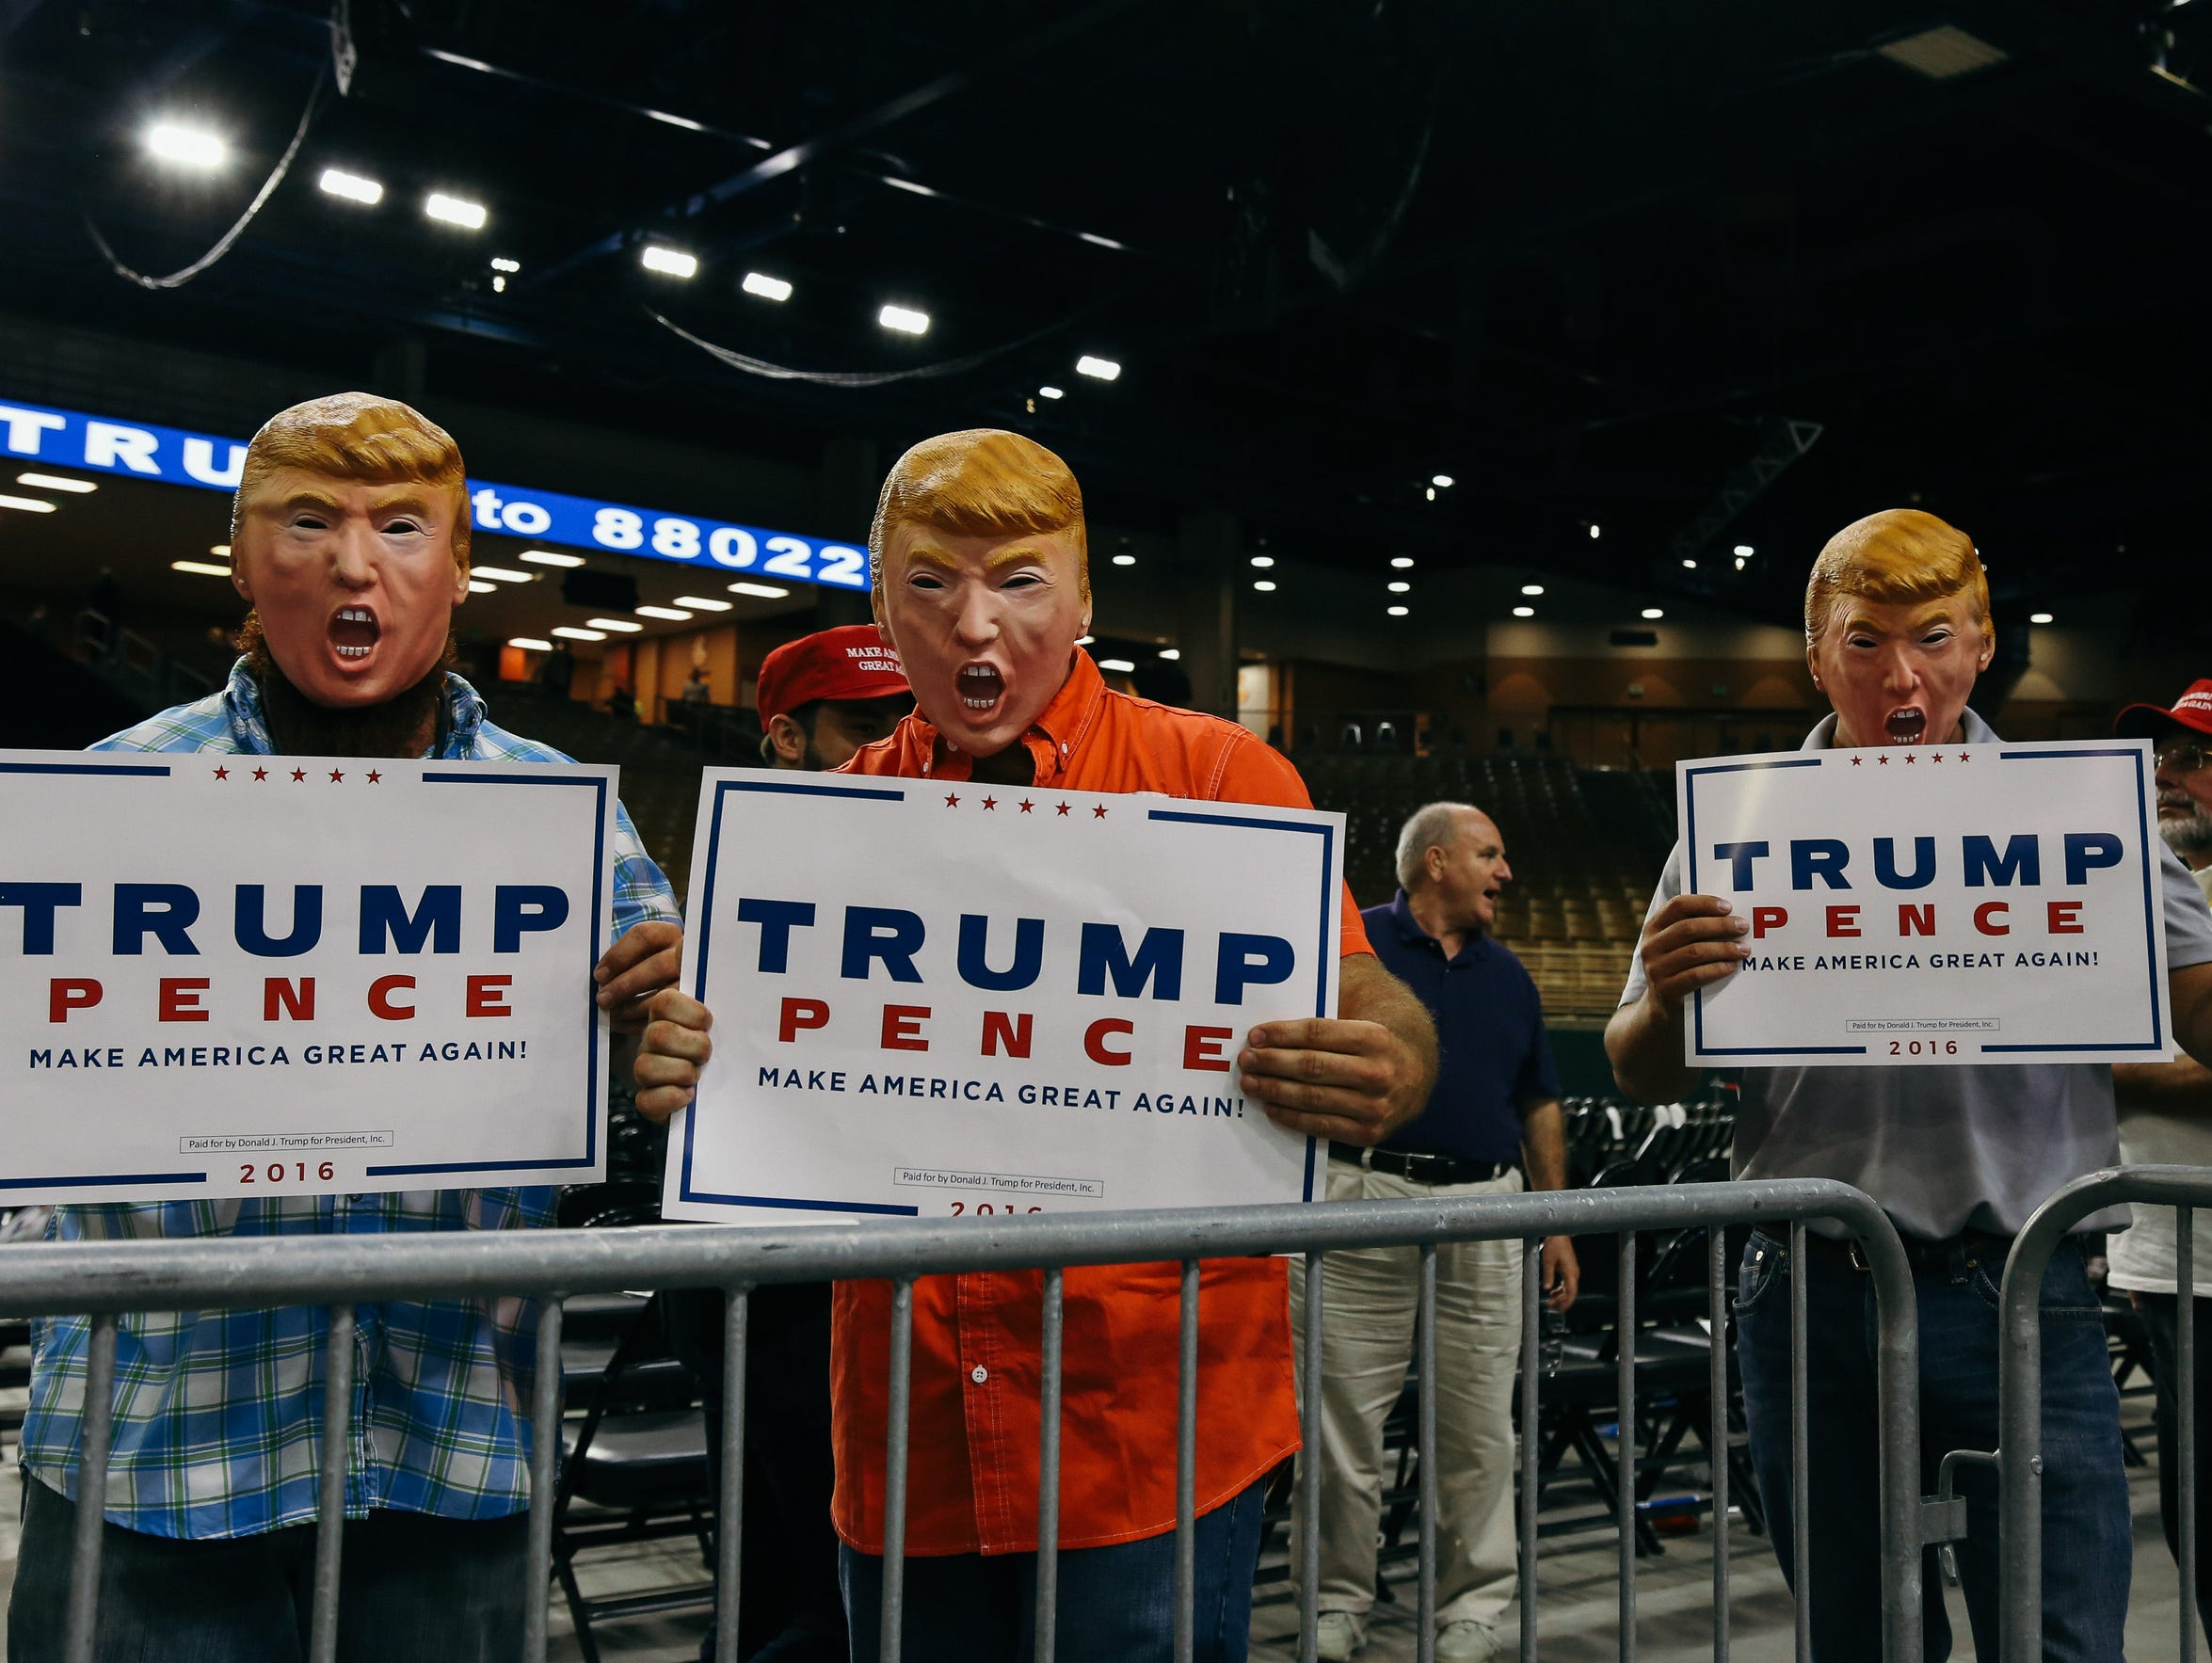 Donald Trumo held a rally at the Silver Spurs Arena